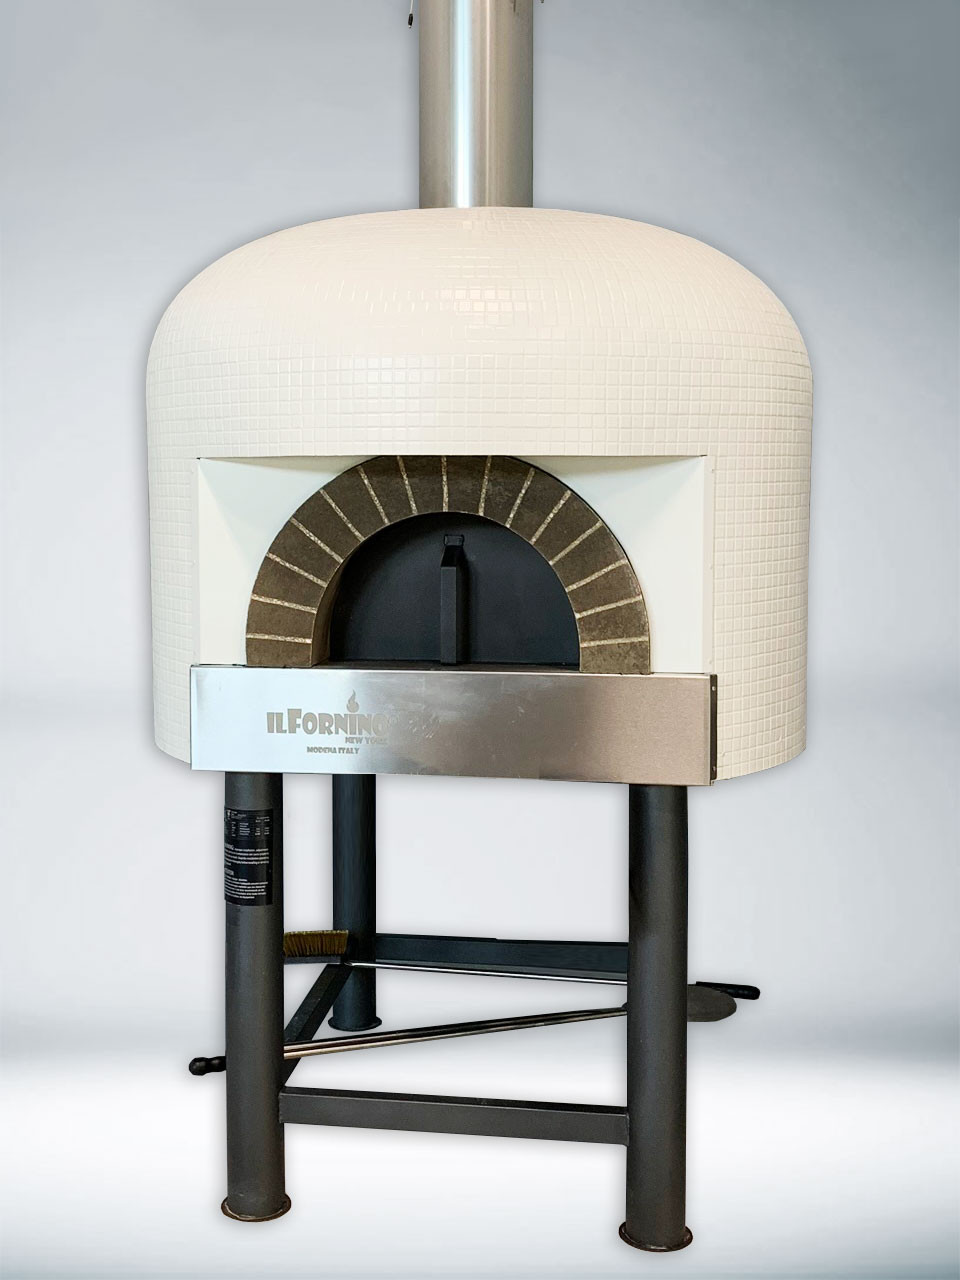 Napolicento Commercial Wood Fired Pizza Oven with Stand